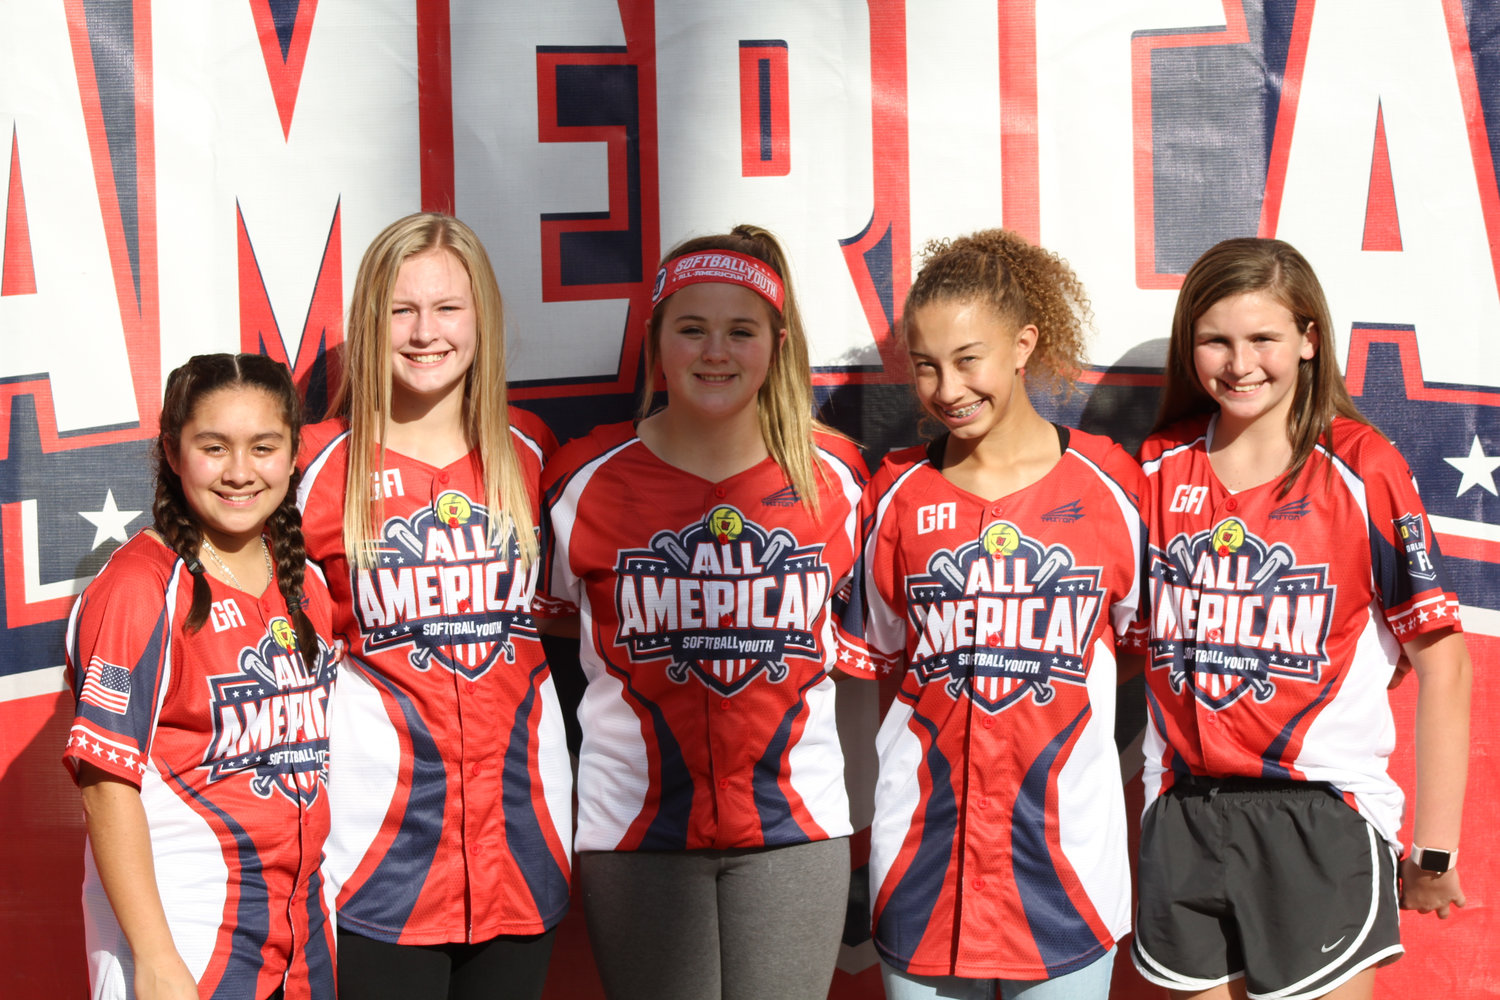 Local softball players compete in All-American Games | The